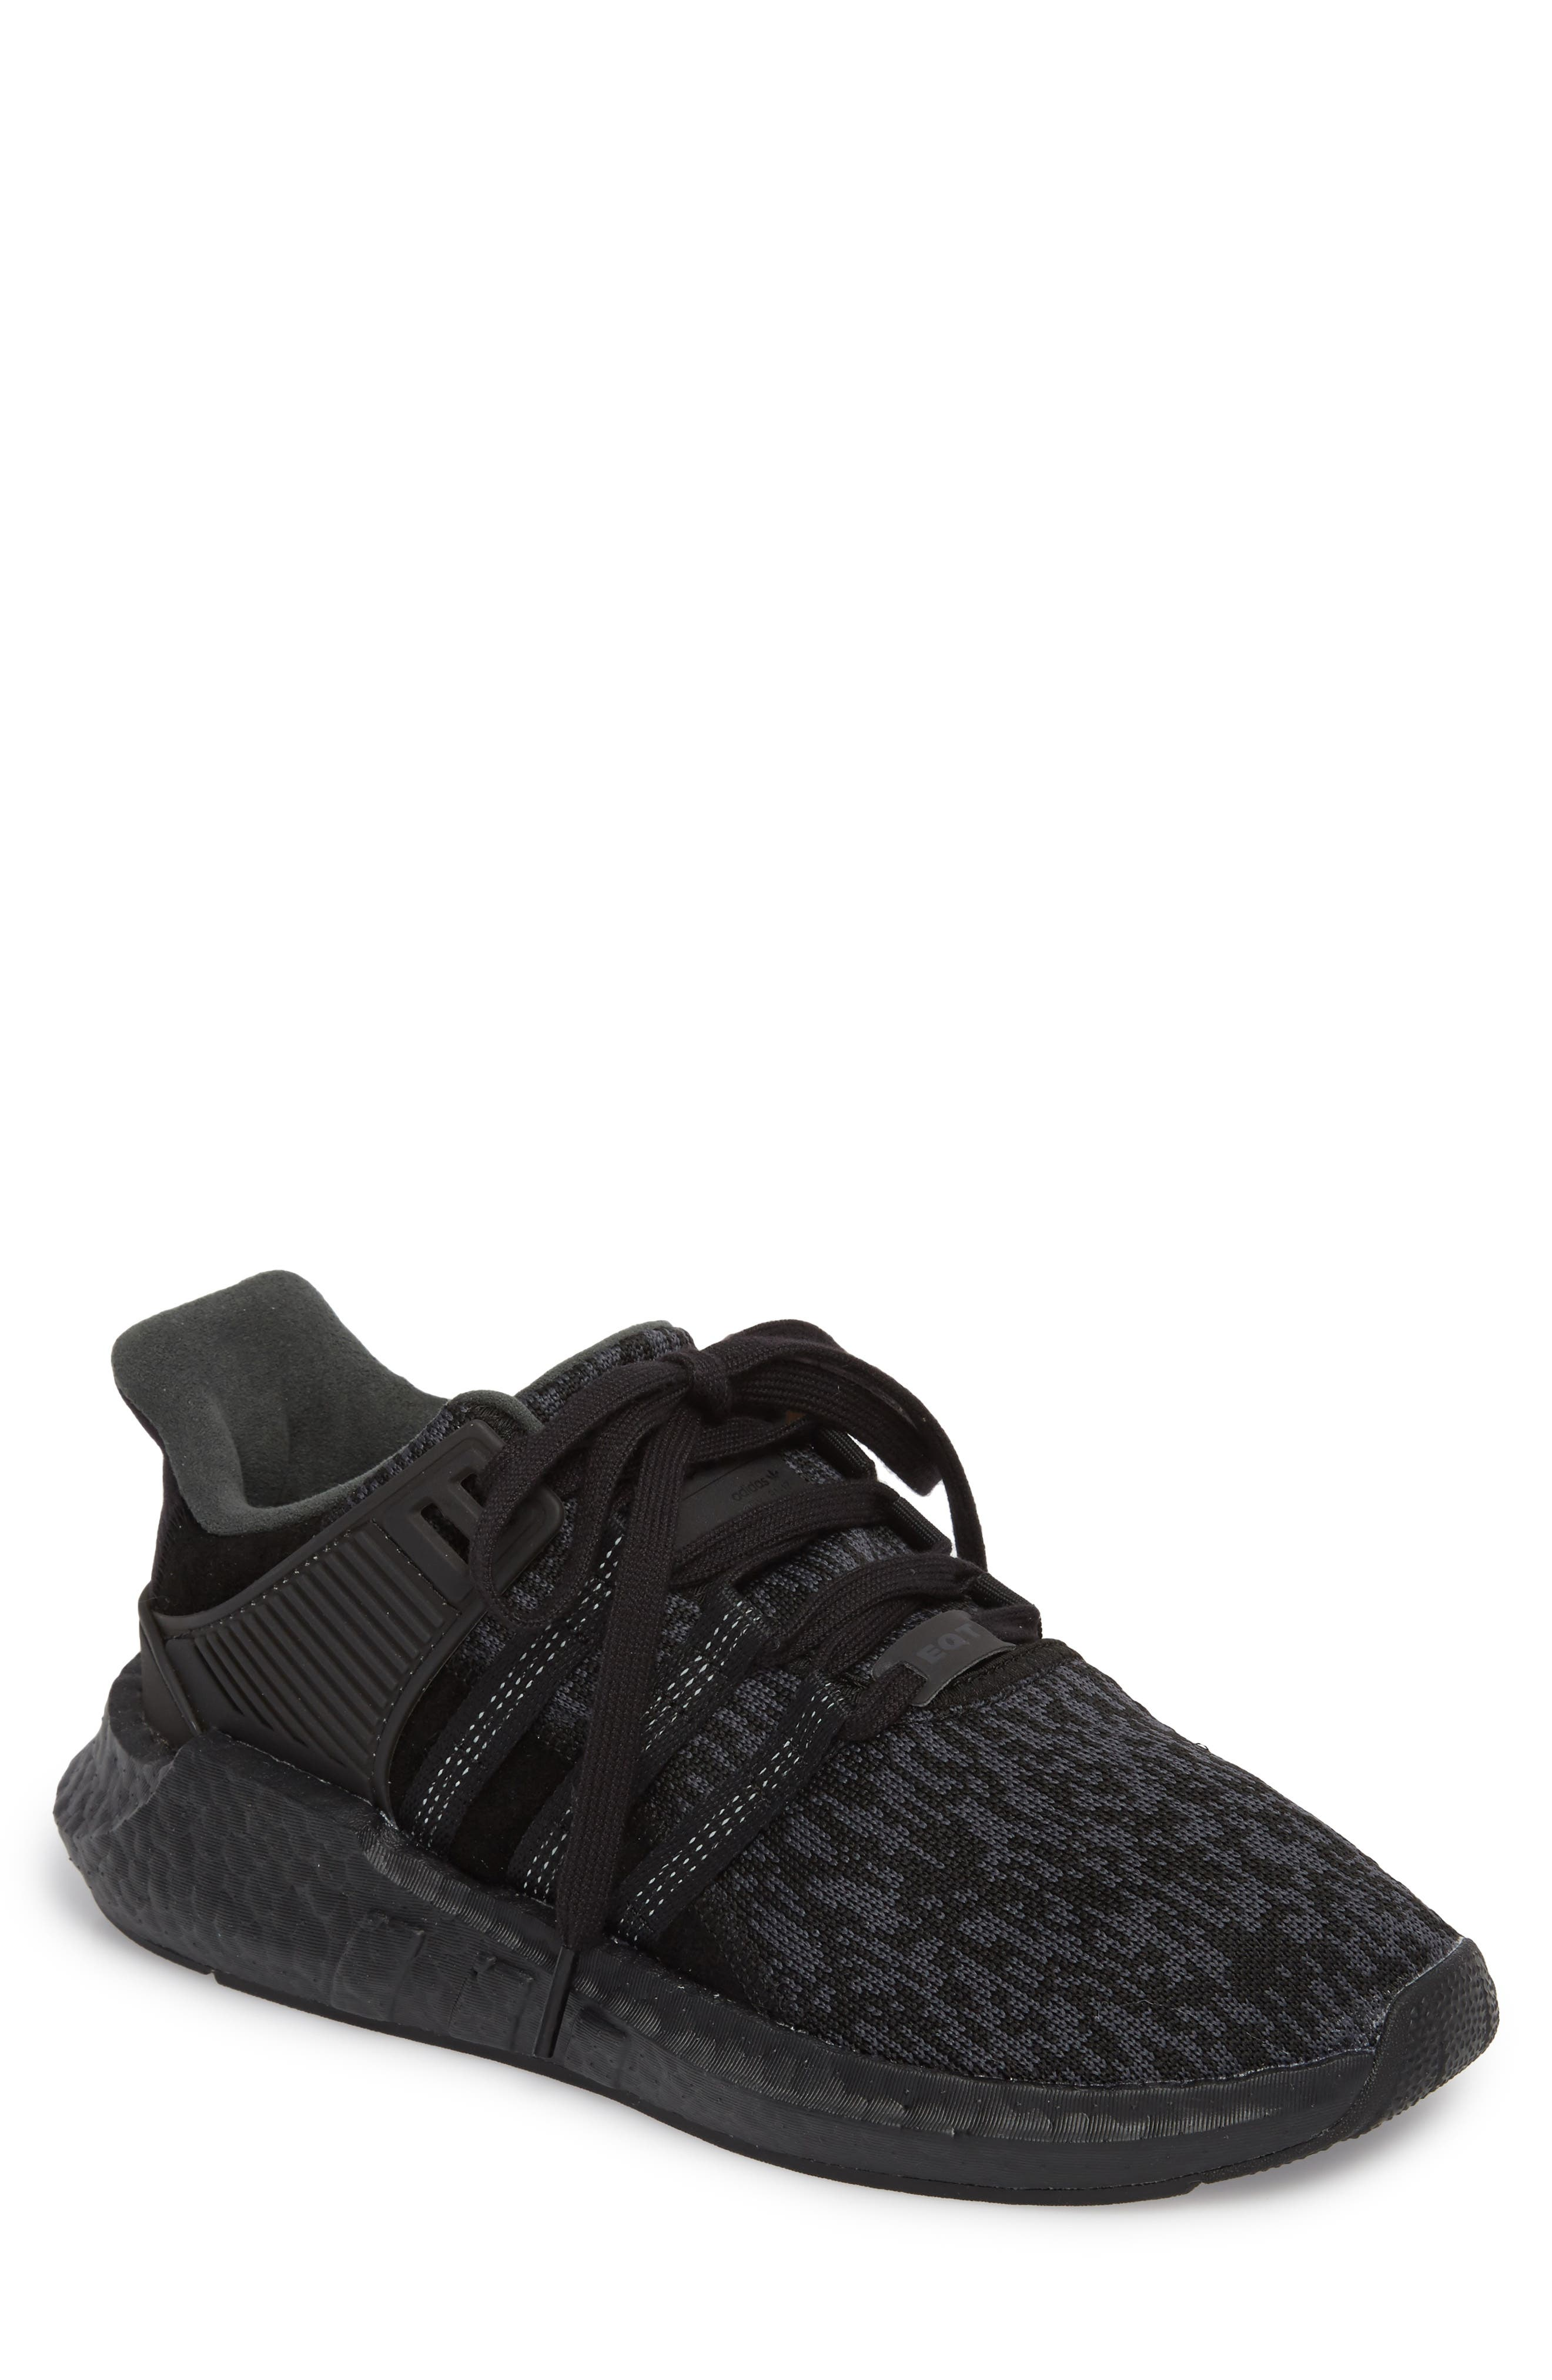 adidas EQT Support 93/17 Sneaker (Men)